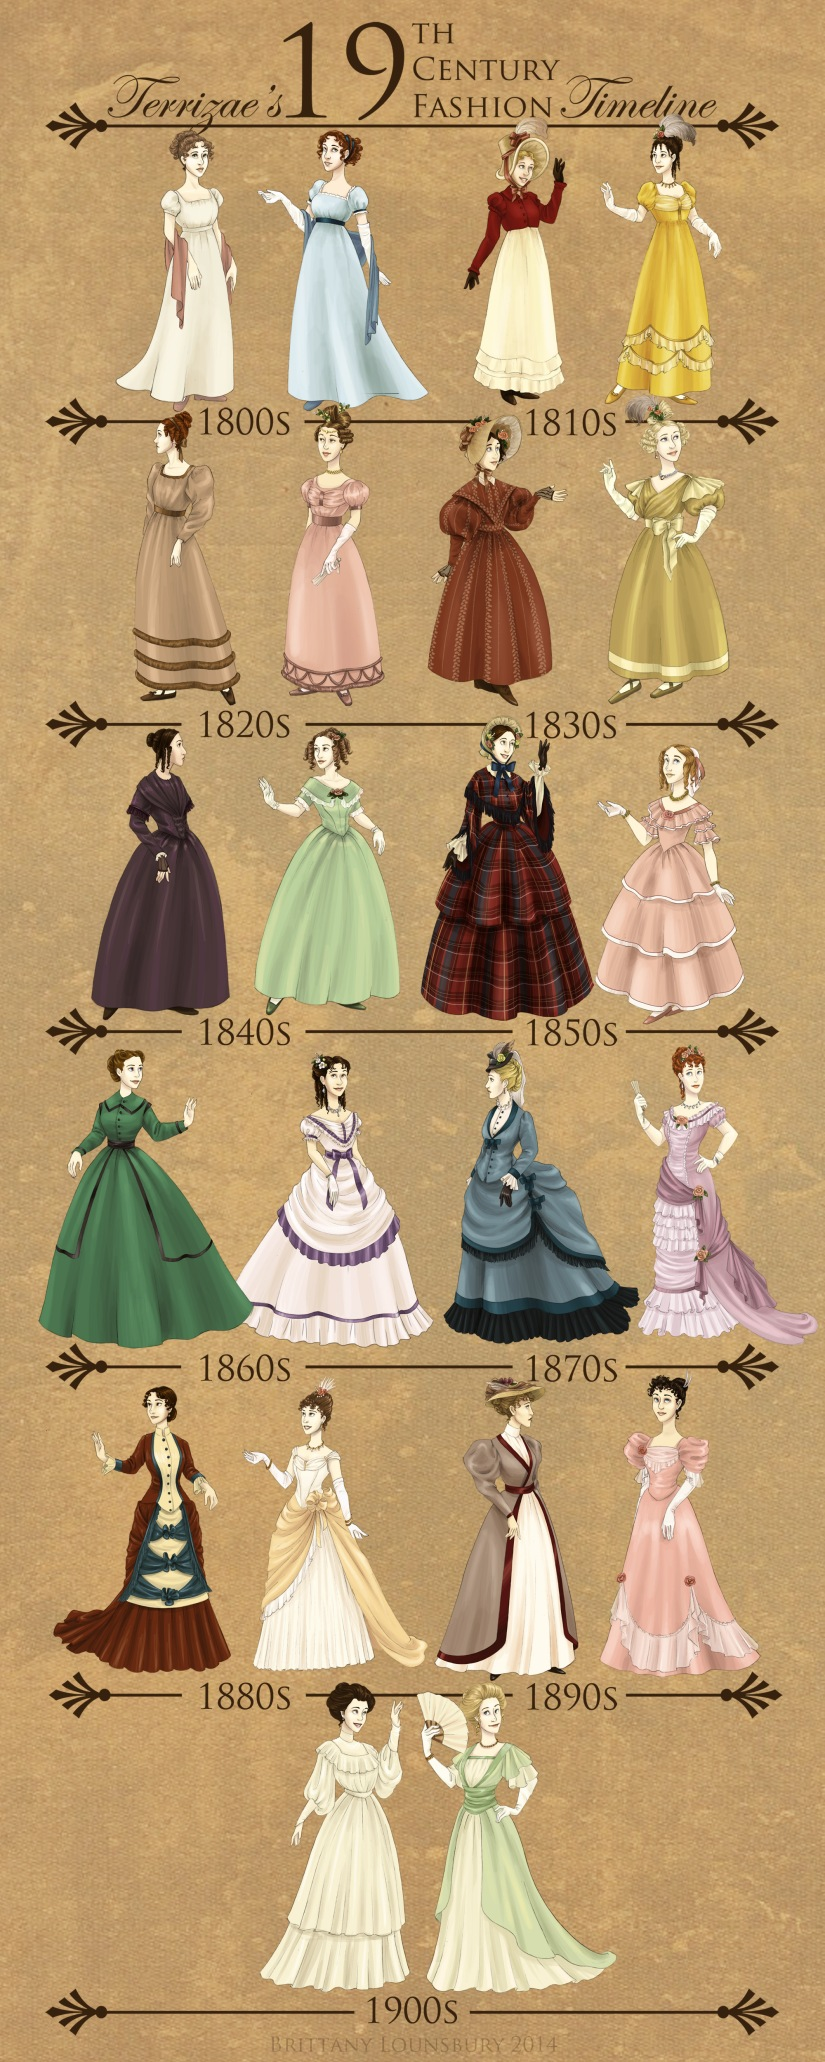 19th Century Fashion by Terrize on Deviant Art